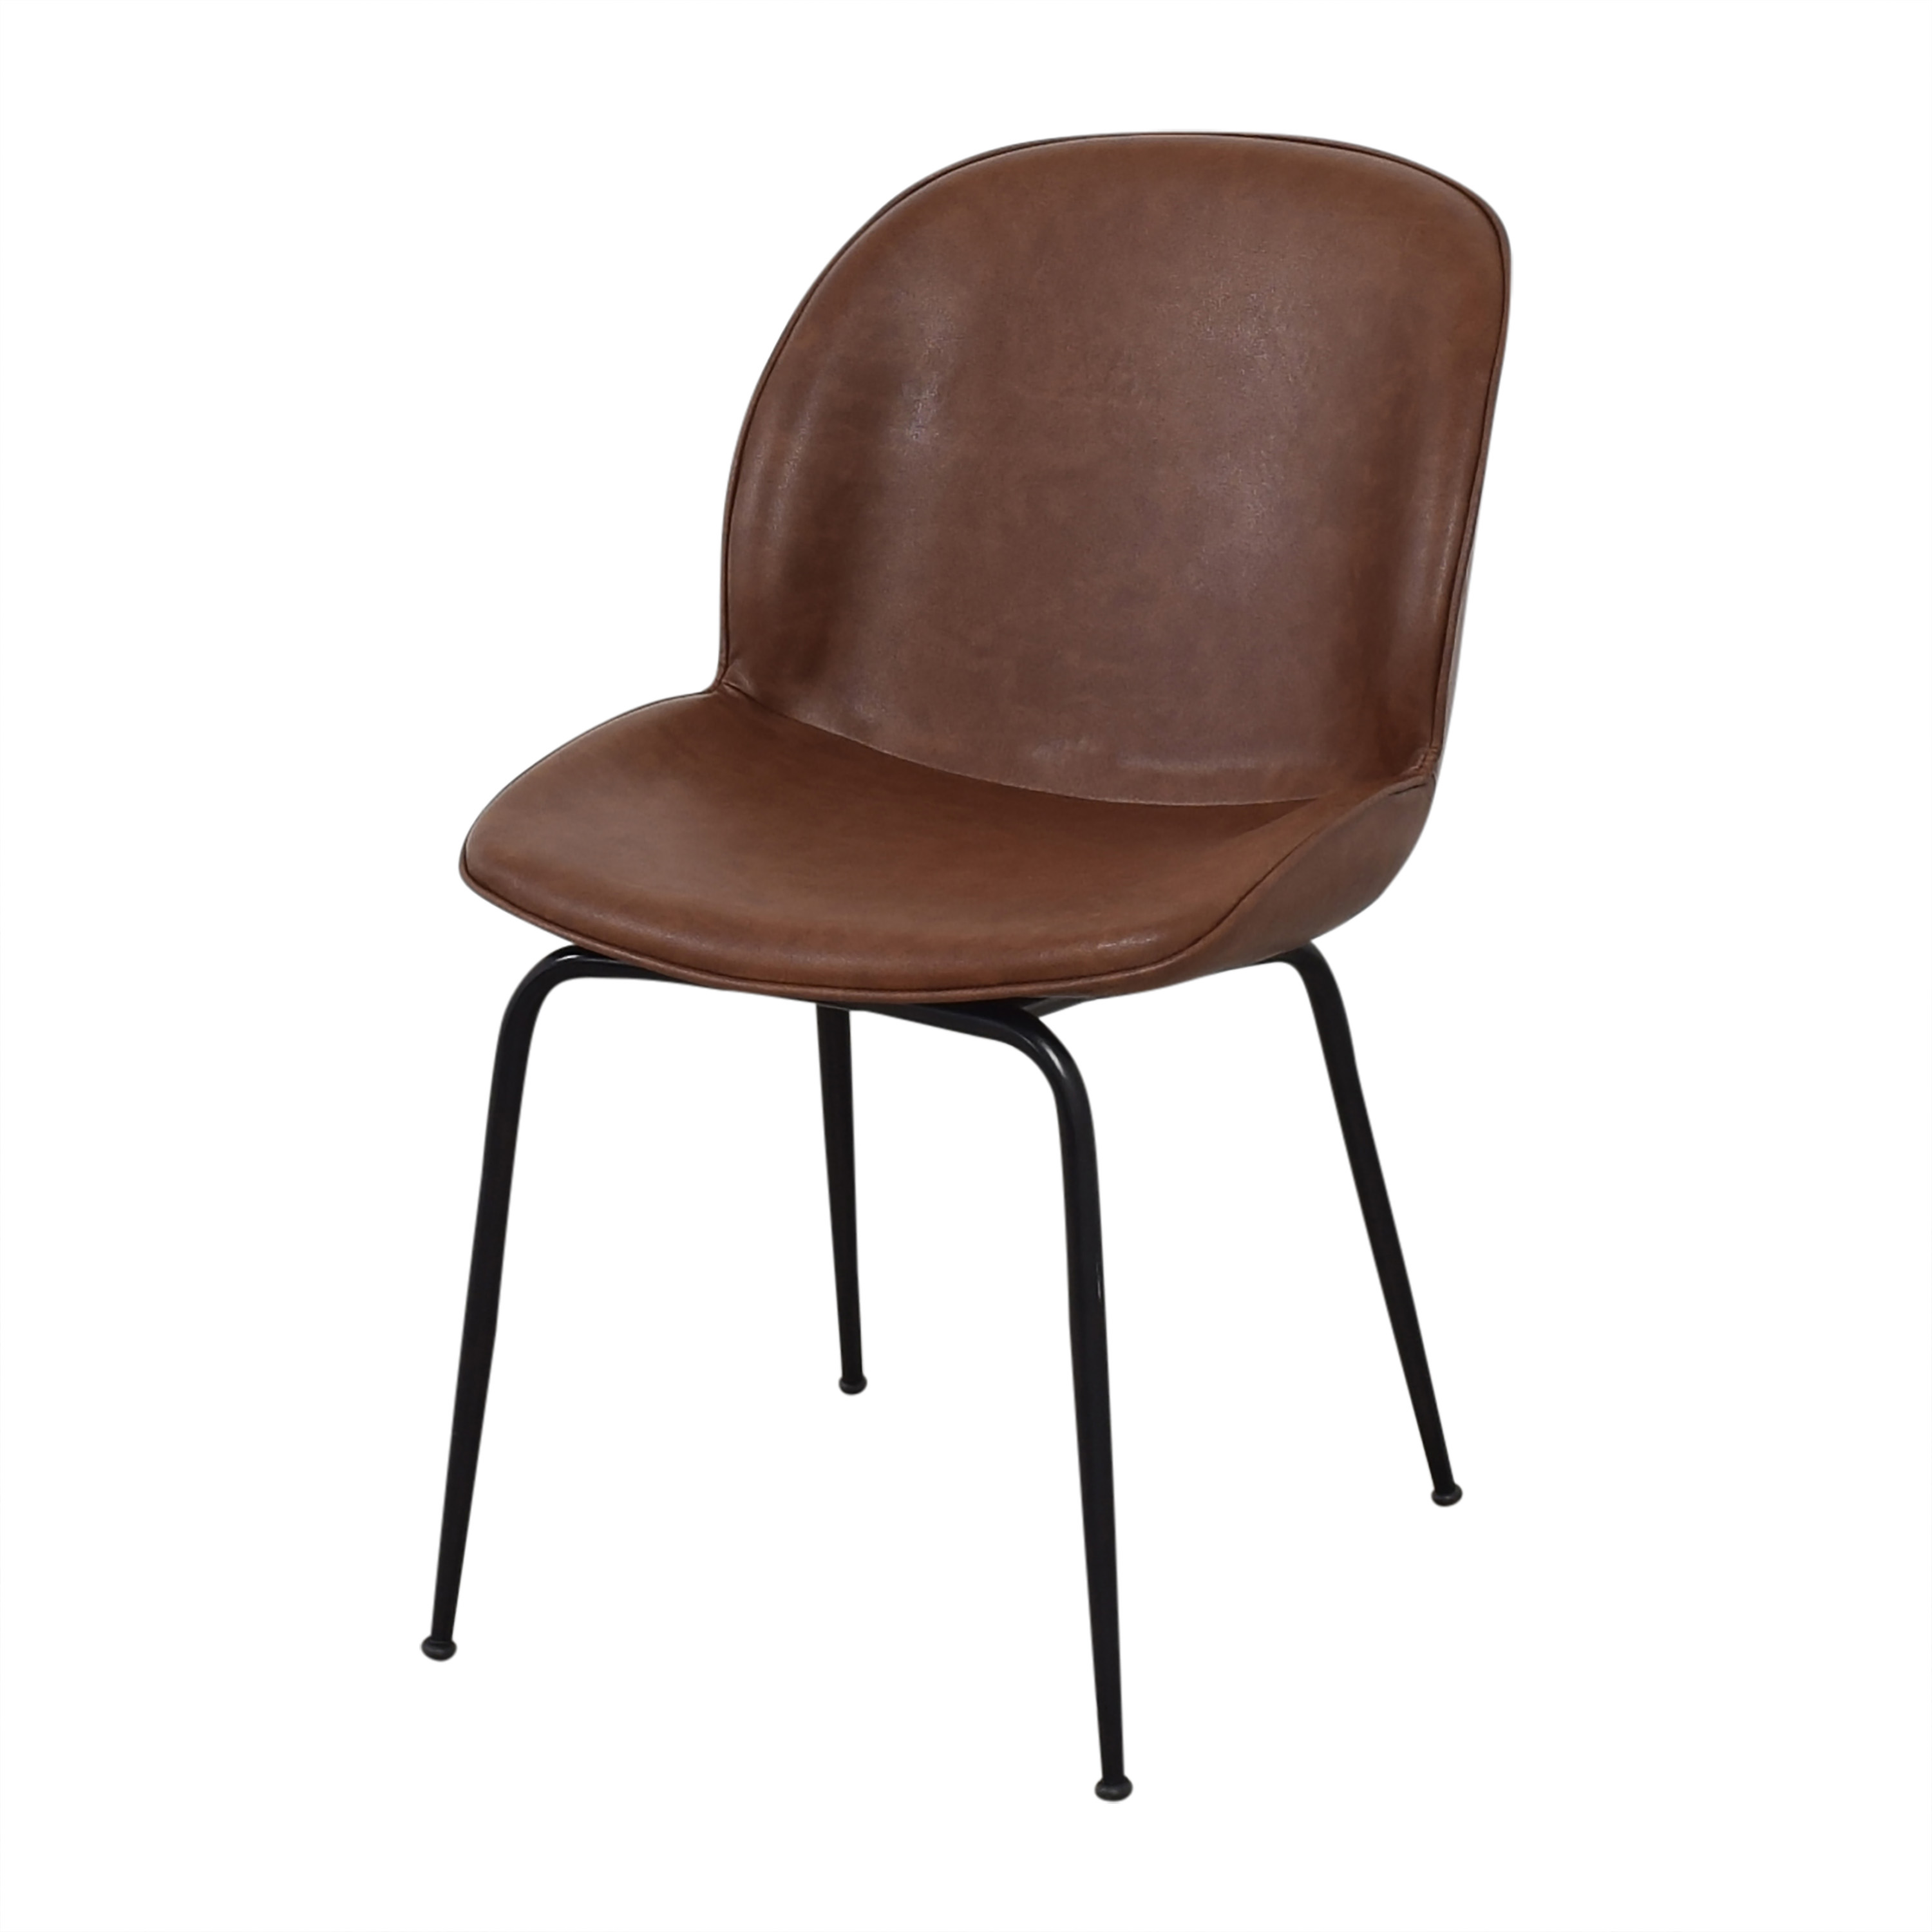 Upholstered Modern Dining Chairs / Chairs